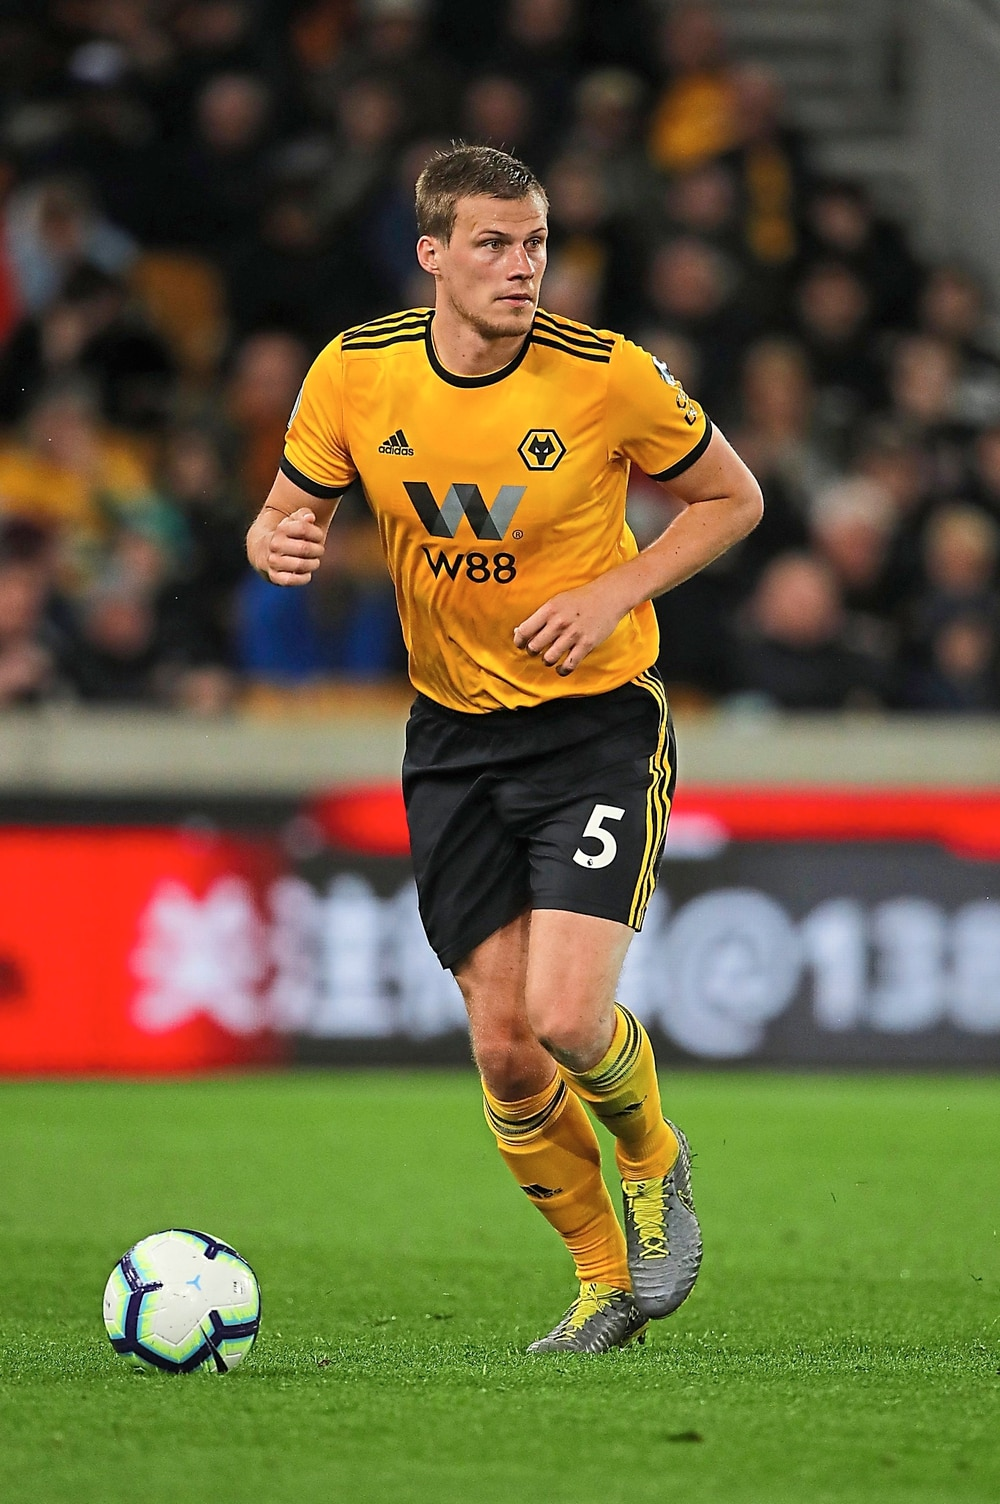 Wolves defender Ryan Bennett: This has been the best season of my career